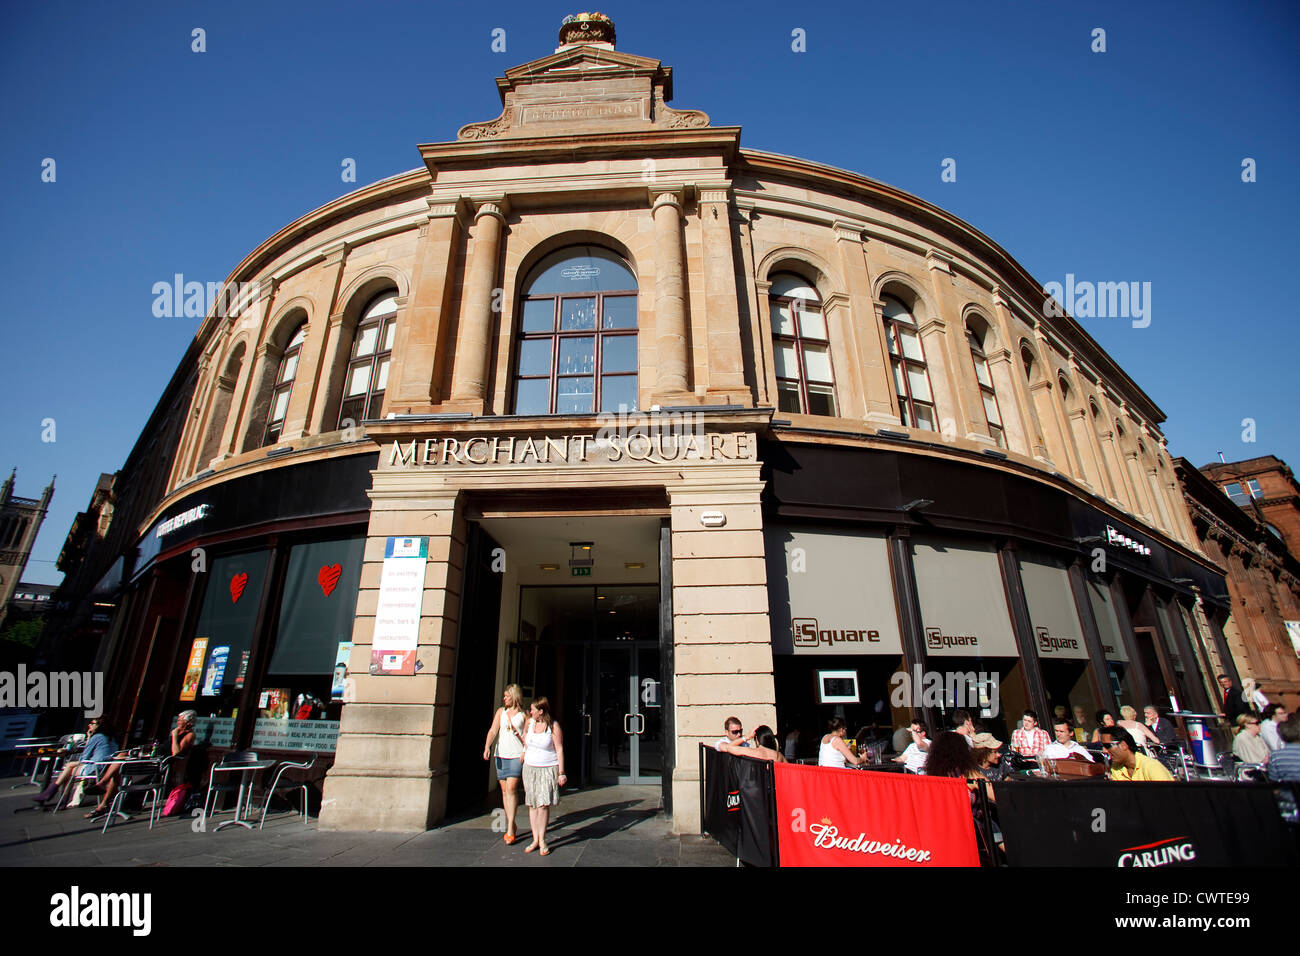 Merchant Square .Candleriggs Merchant City Area, Glasgow. - Stock Image